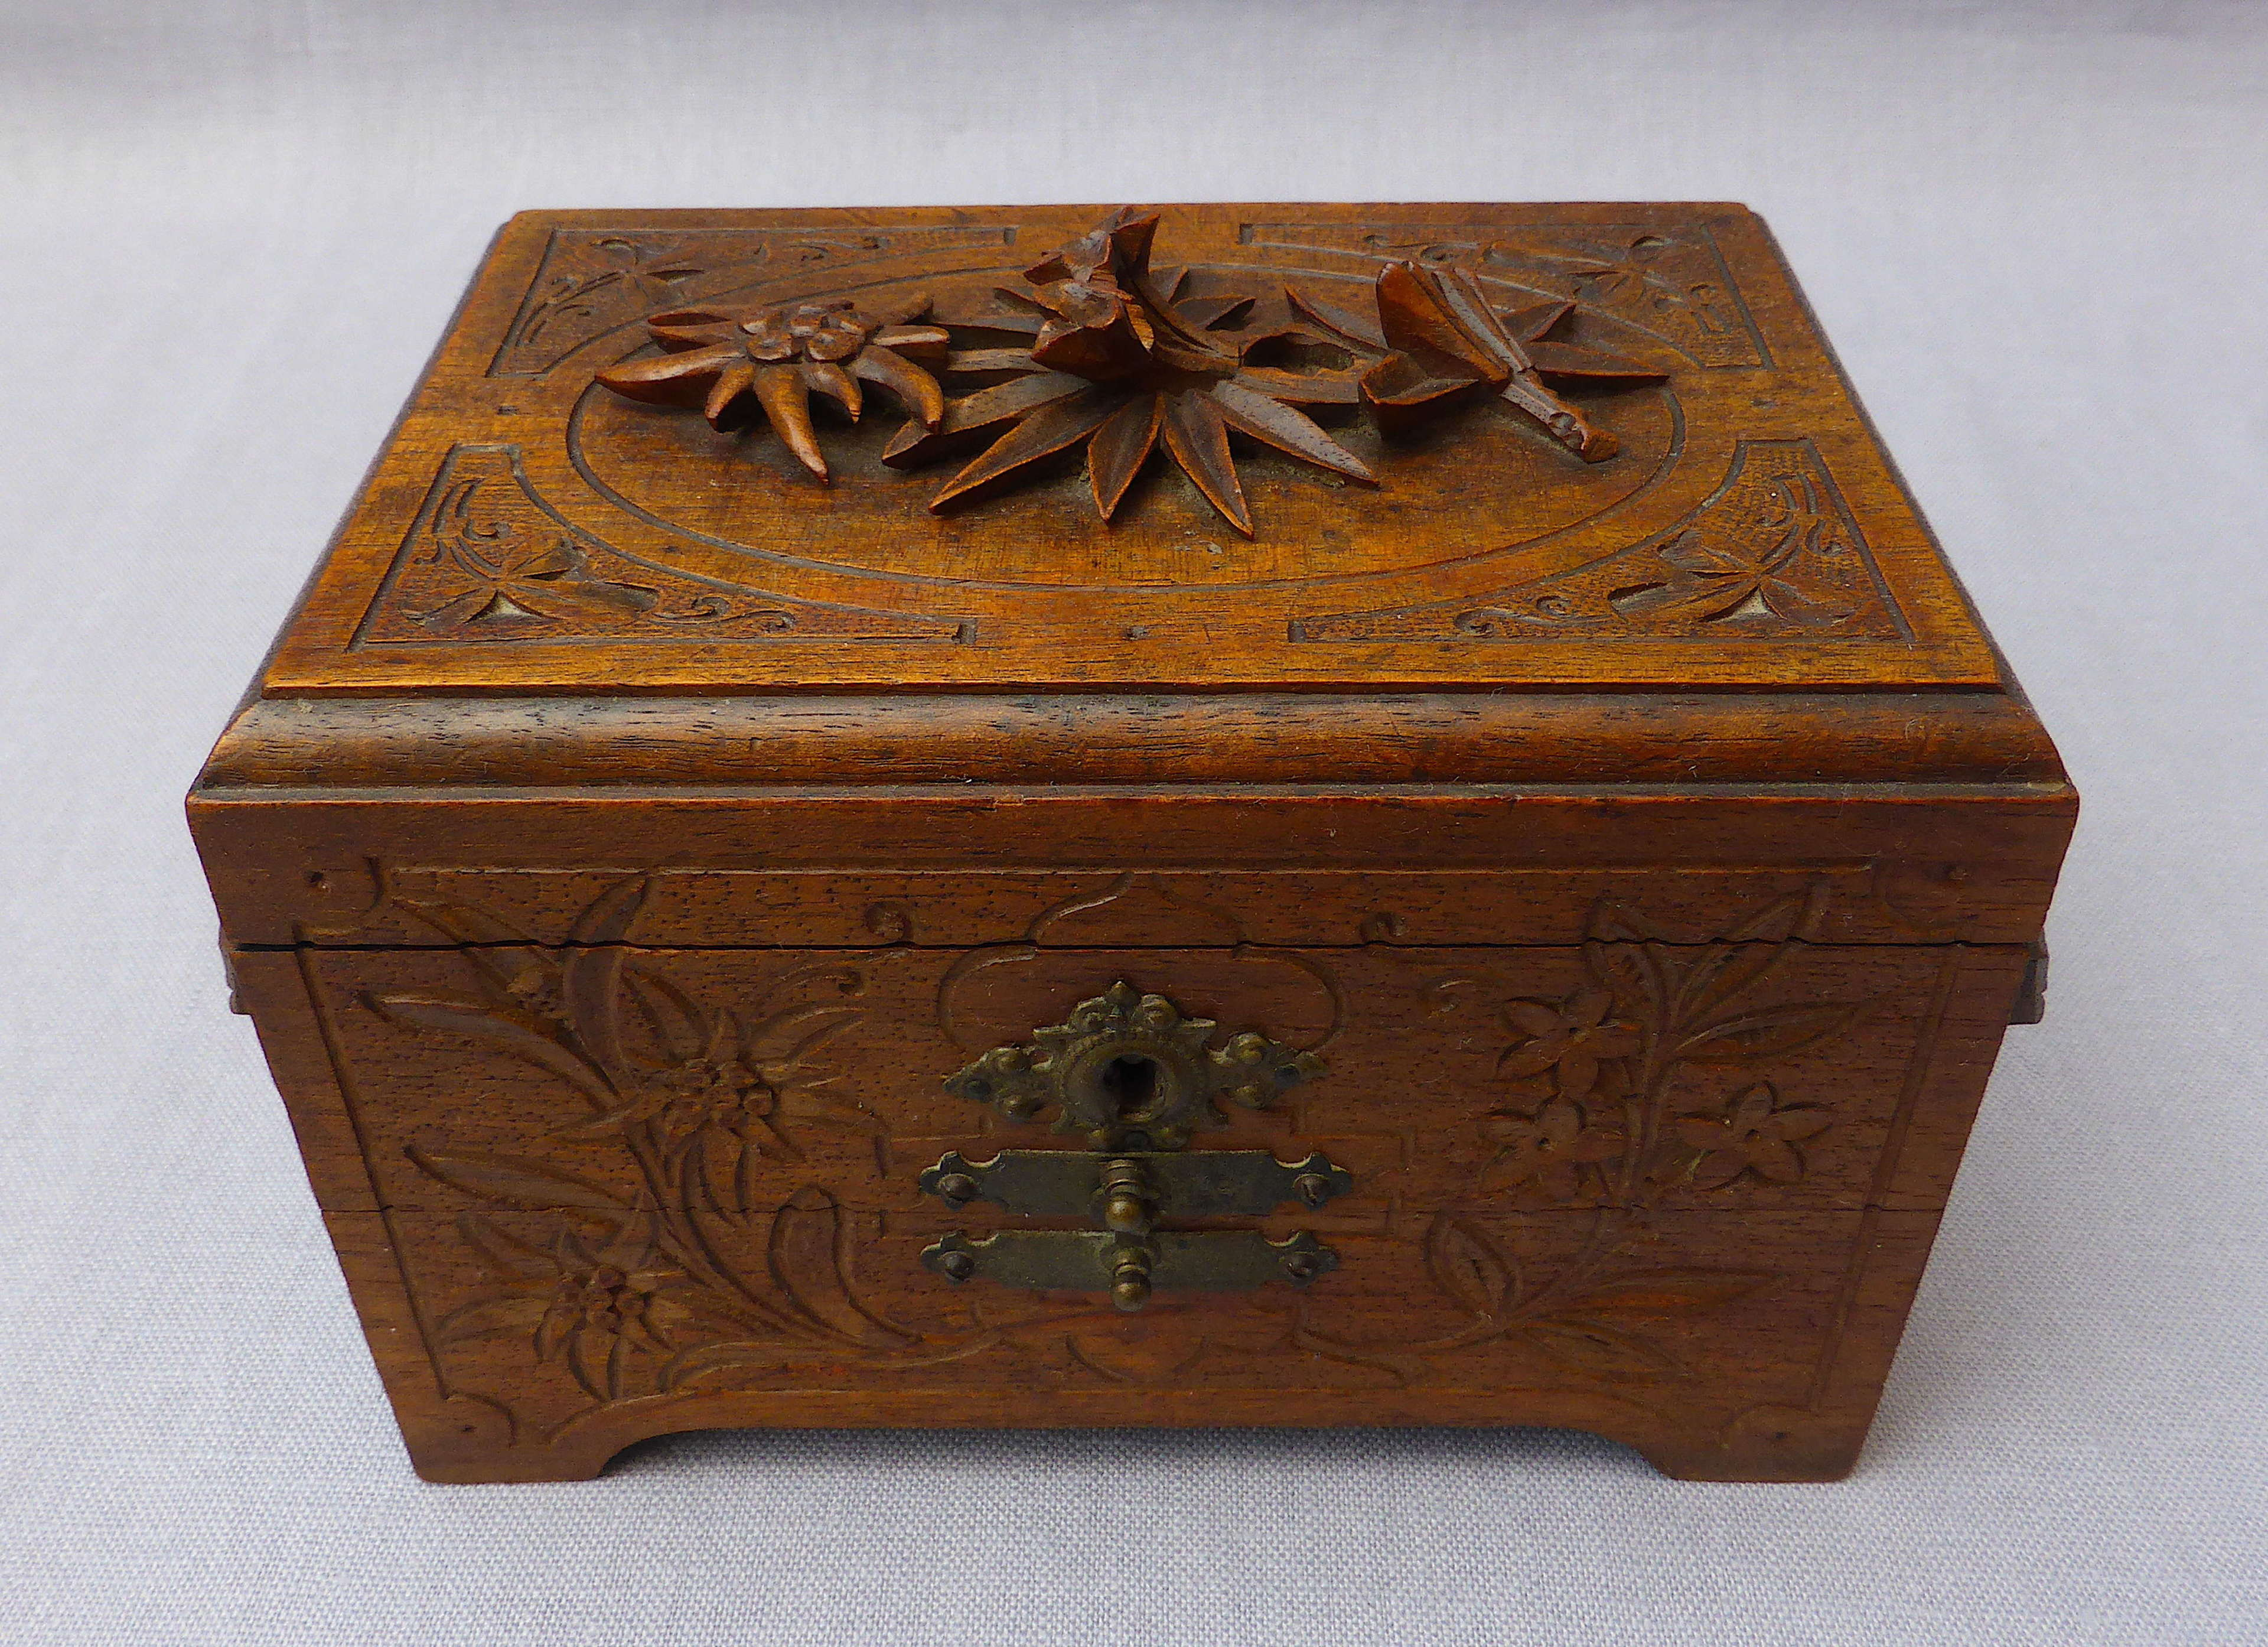 Early 20th century Black Forest carved jewellery box